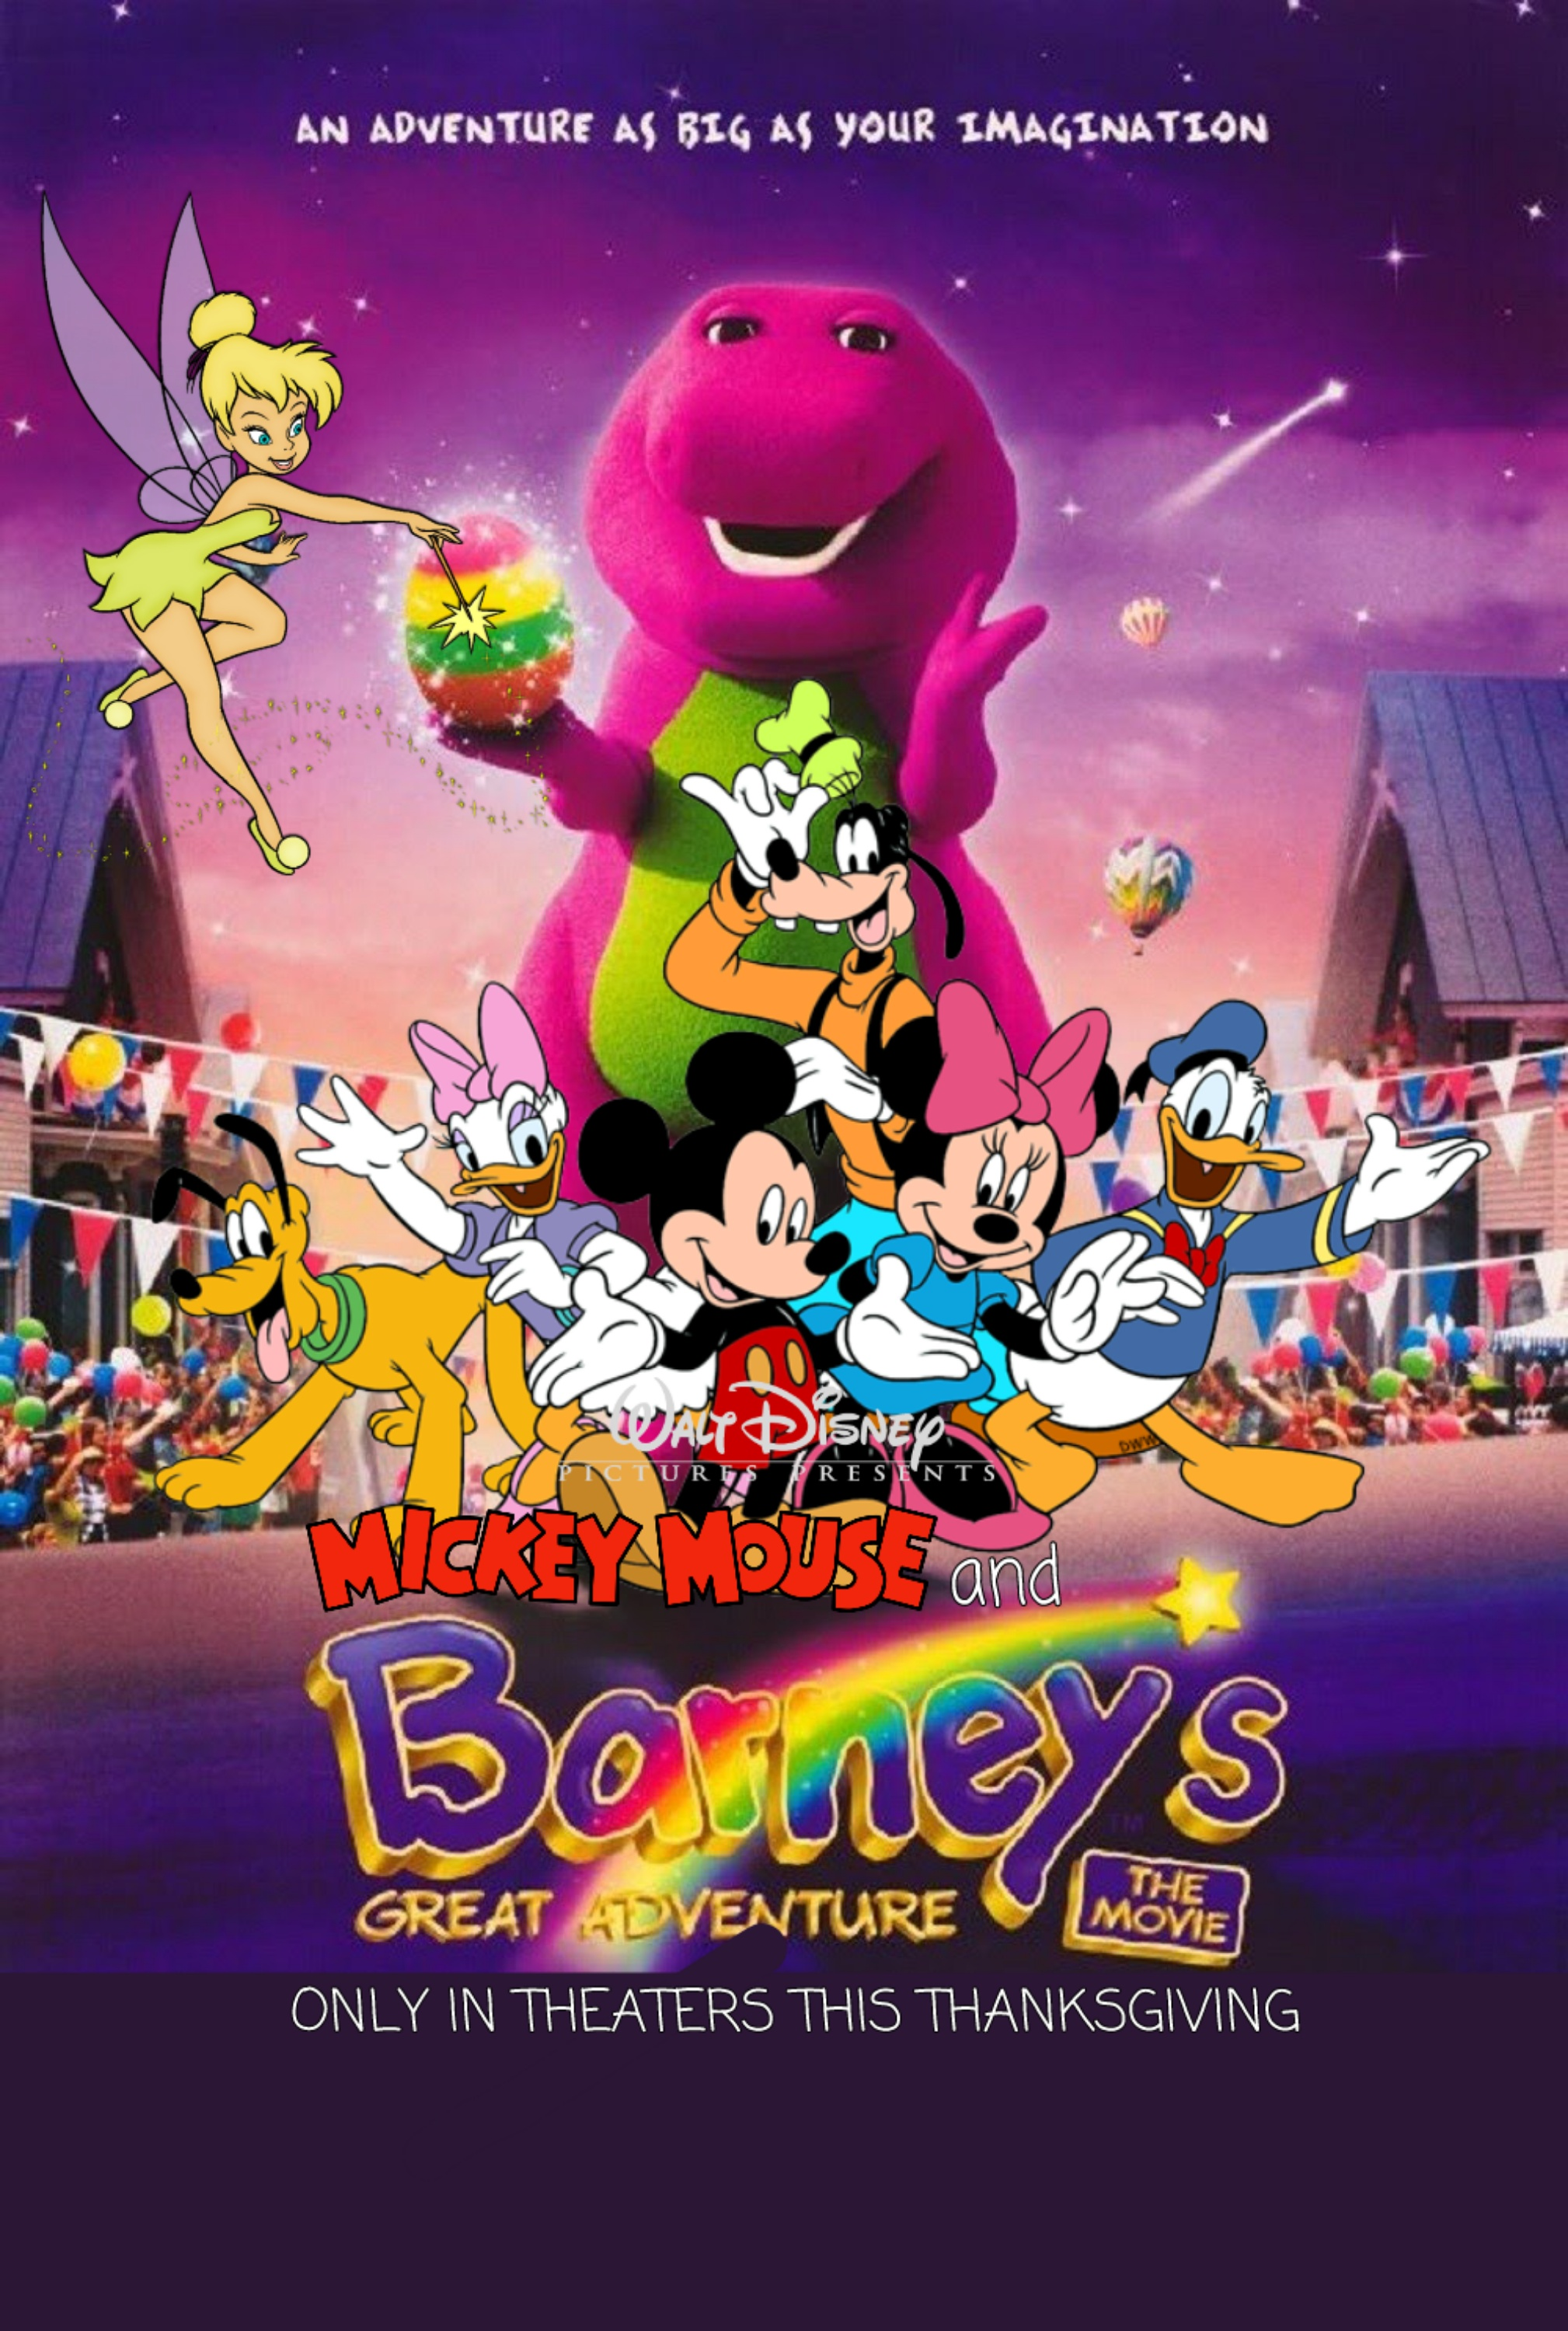 Mickey Mouse and Barney's Great Adventure: The Movie